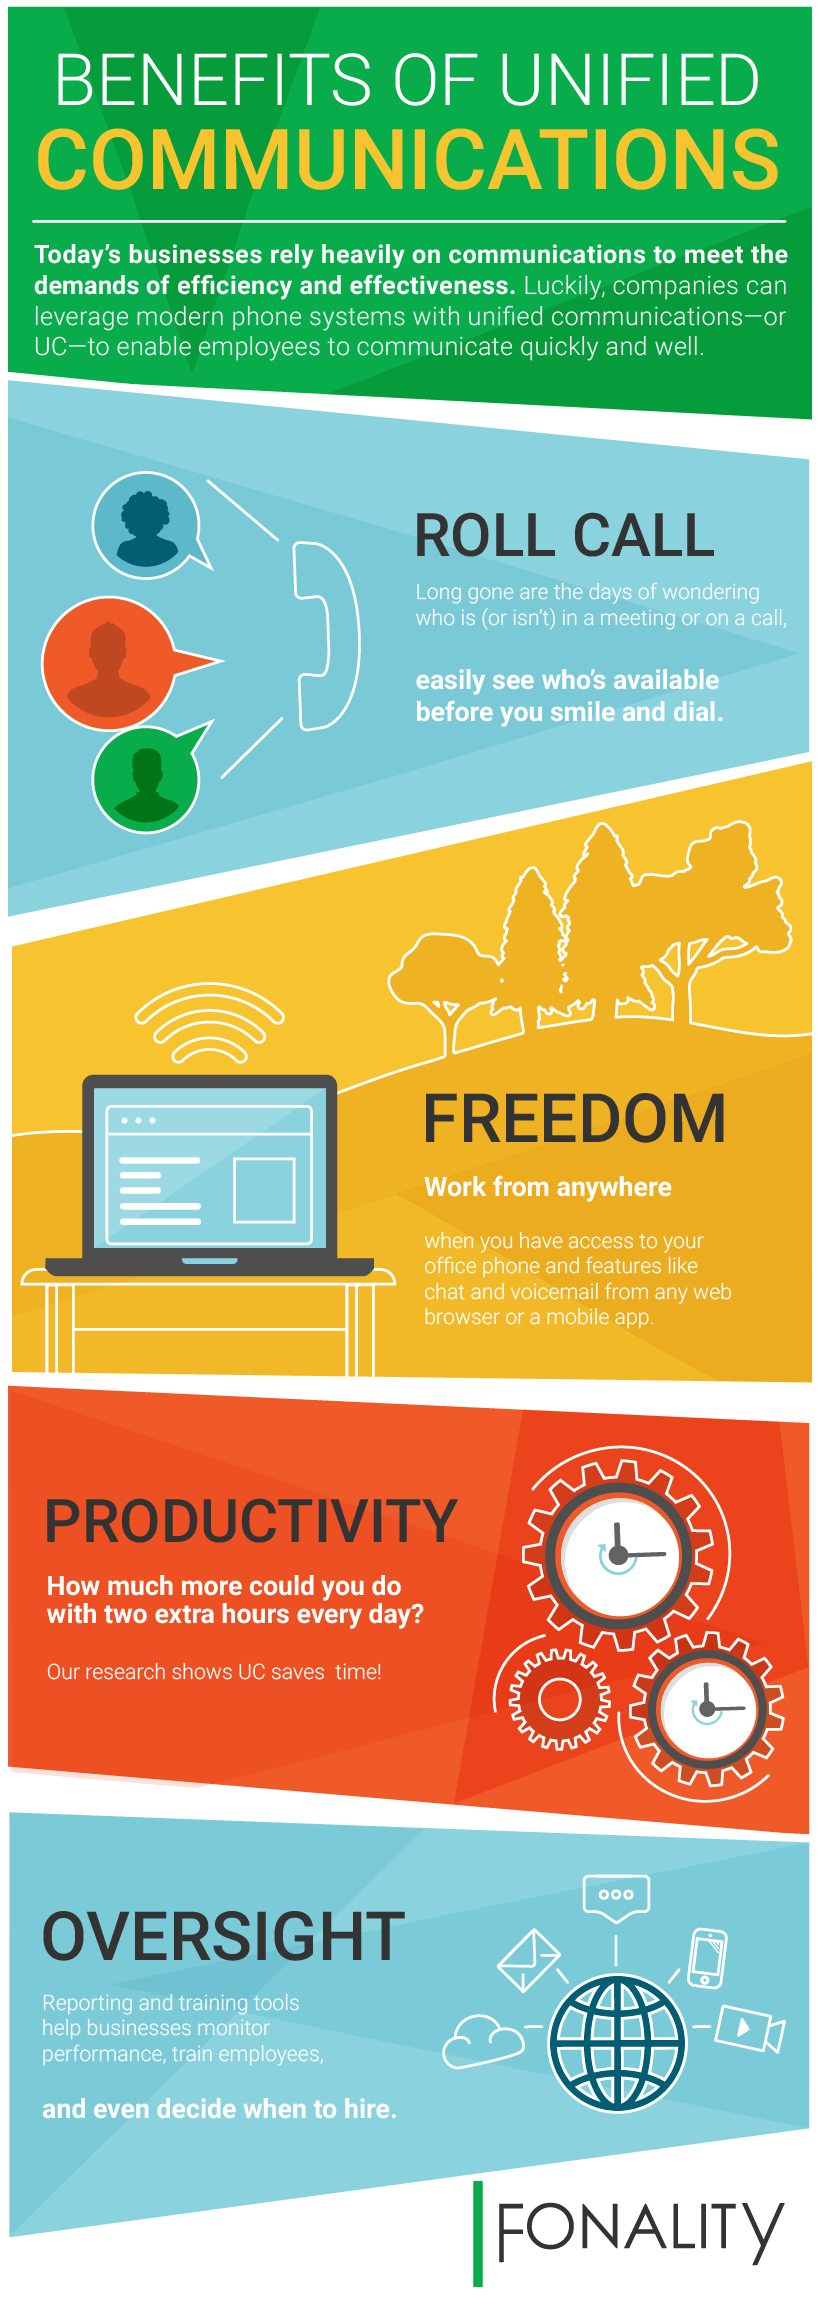 Fonality_Unified_Communication_Benefits_Infographic.png